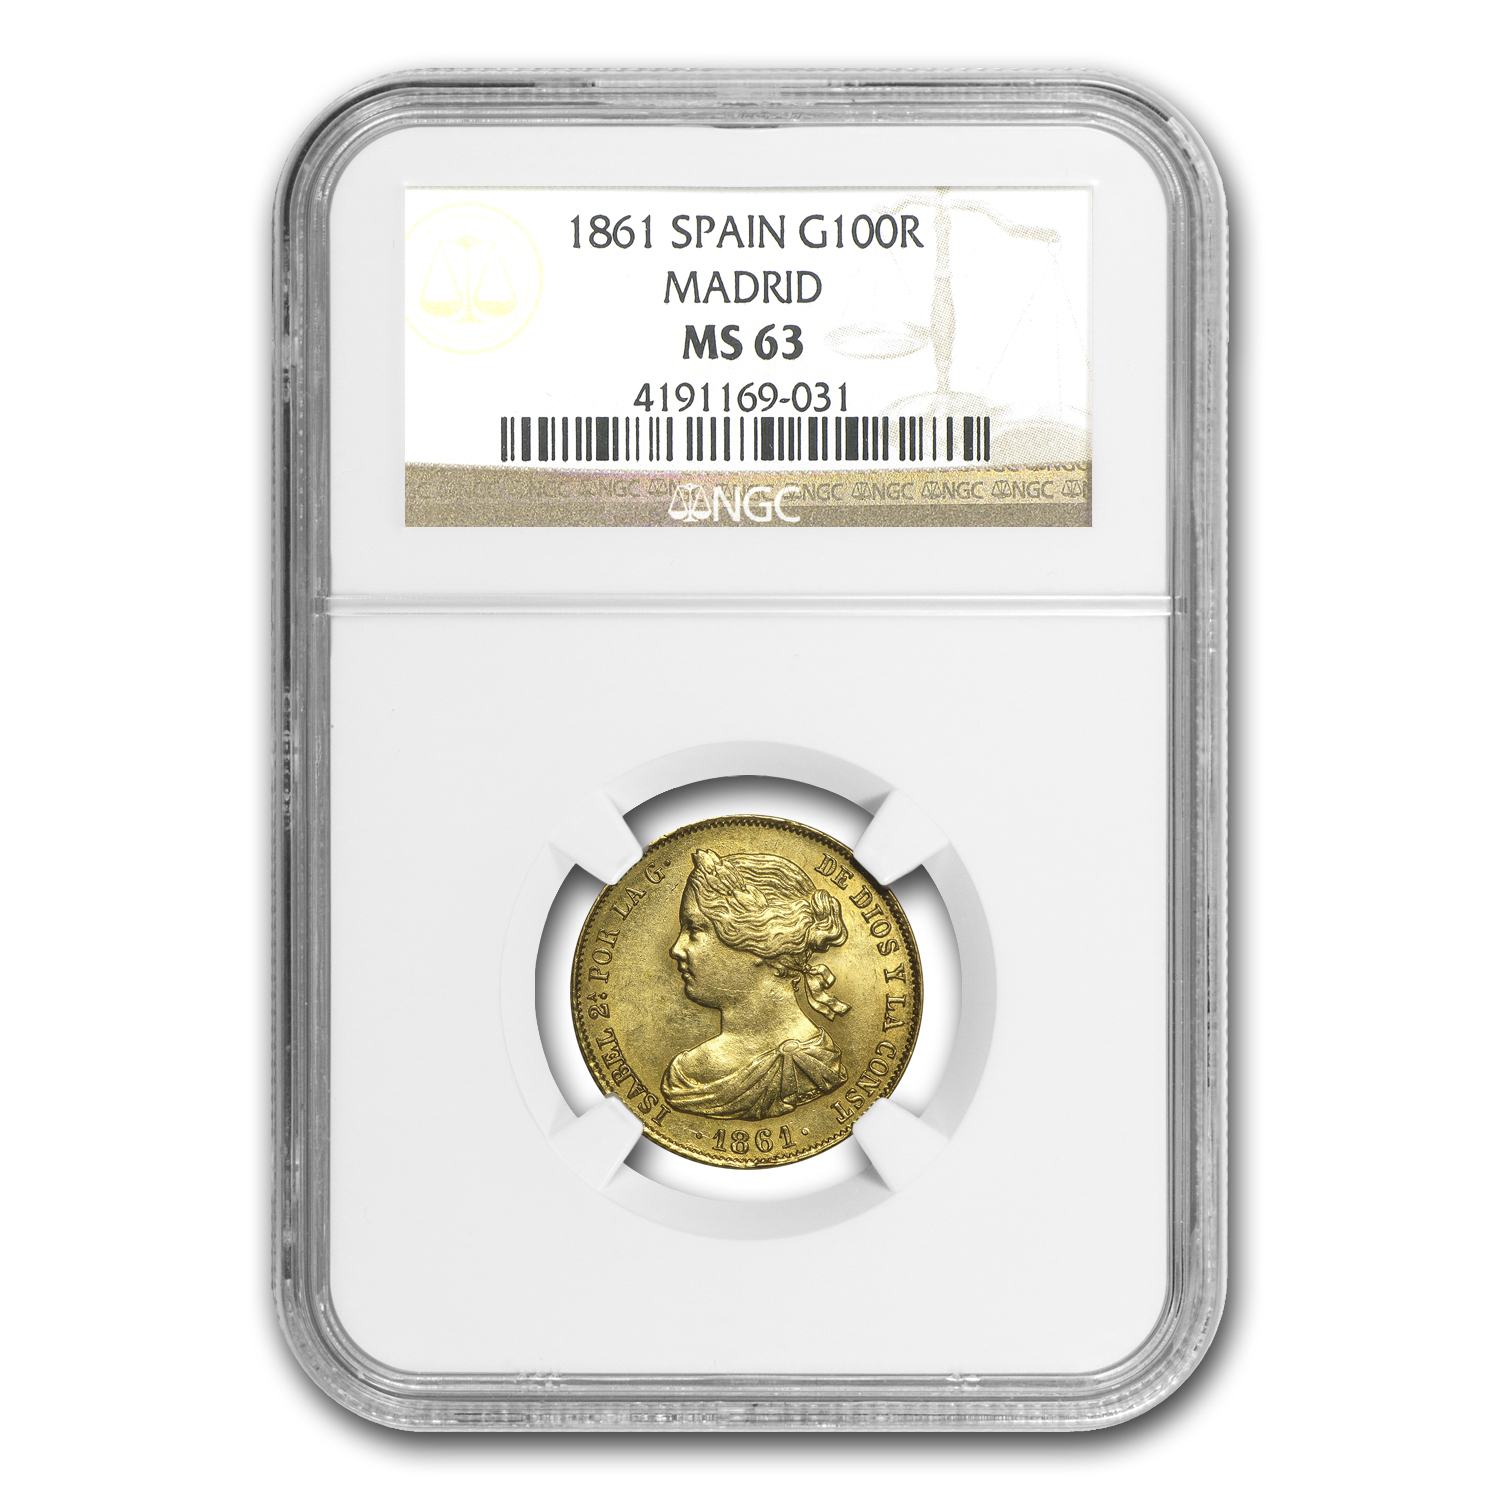 1861 Spain Gold 100 Reales Isabel II MS-63 NGC